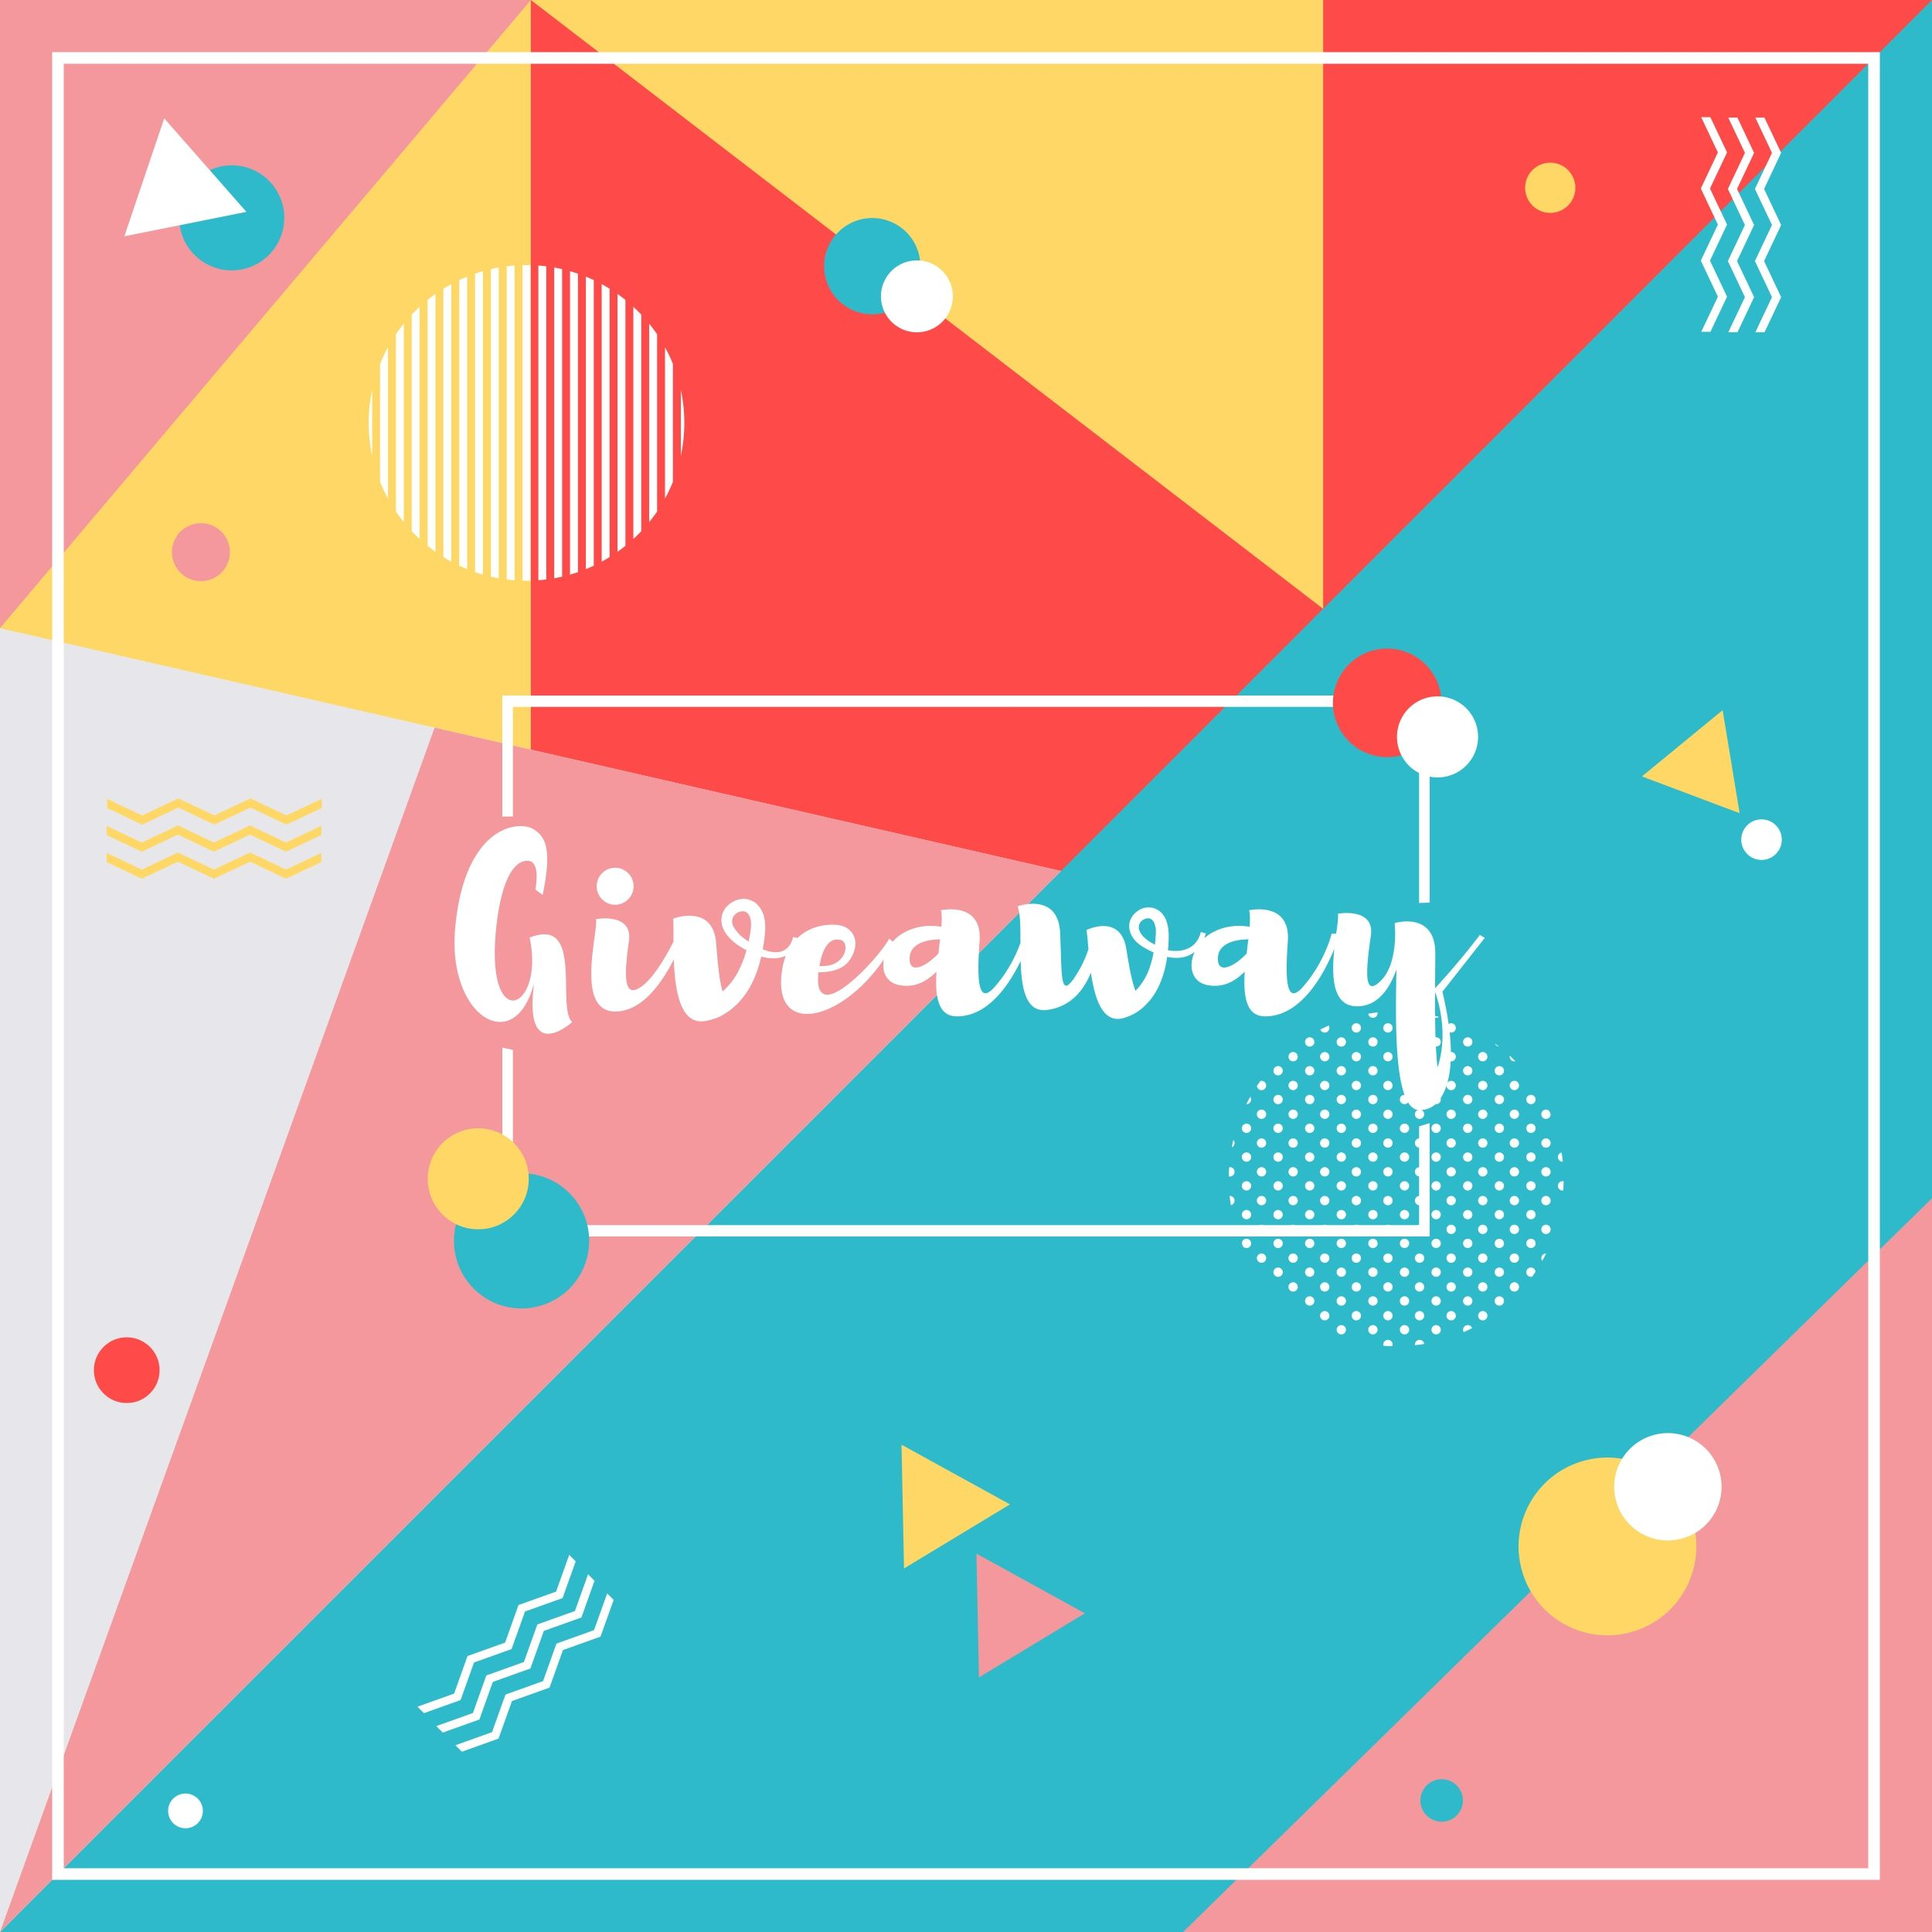 giveaway template download now on freepik giveaway template